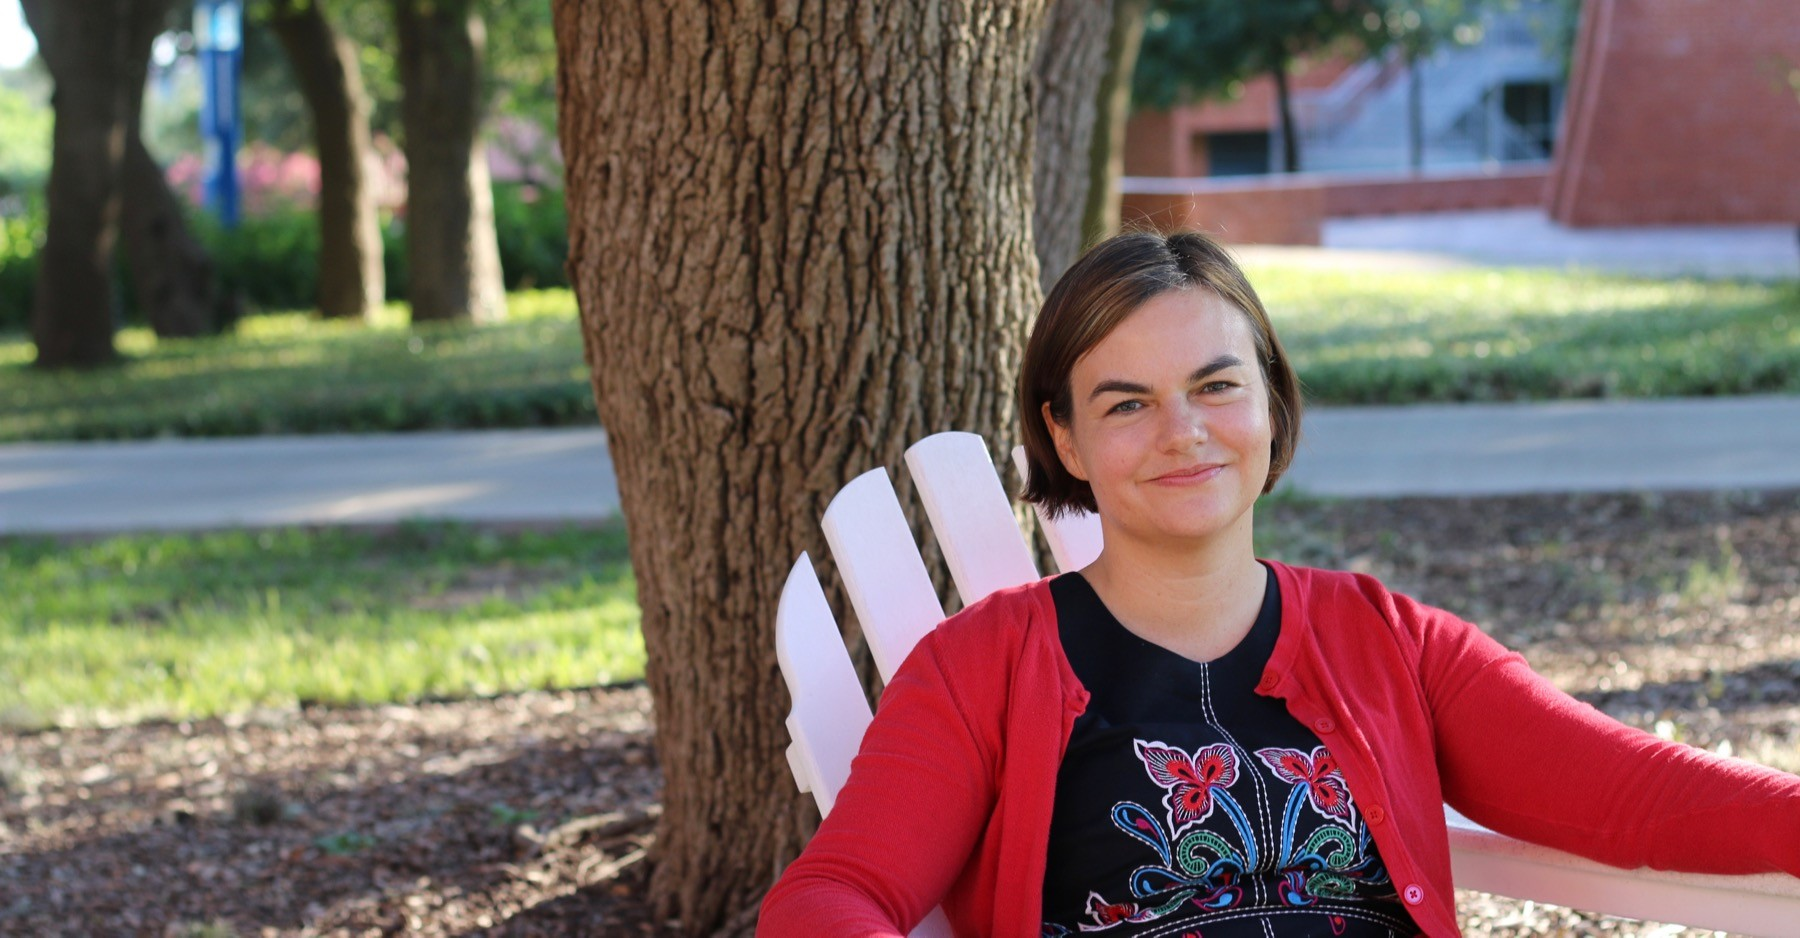 Kelly Grey Carlisle on the campus of Trinity University, where she teaches English and writing. Photo by Will Bostwick